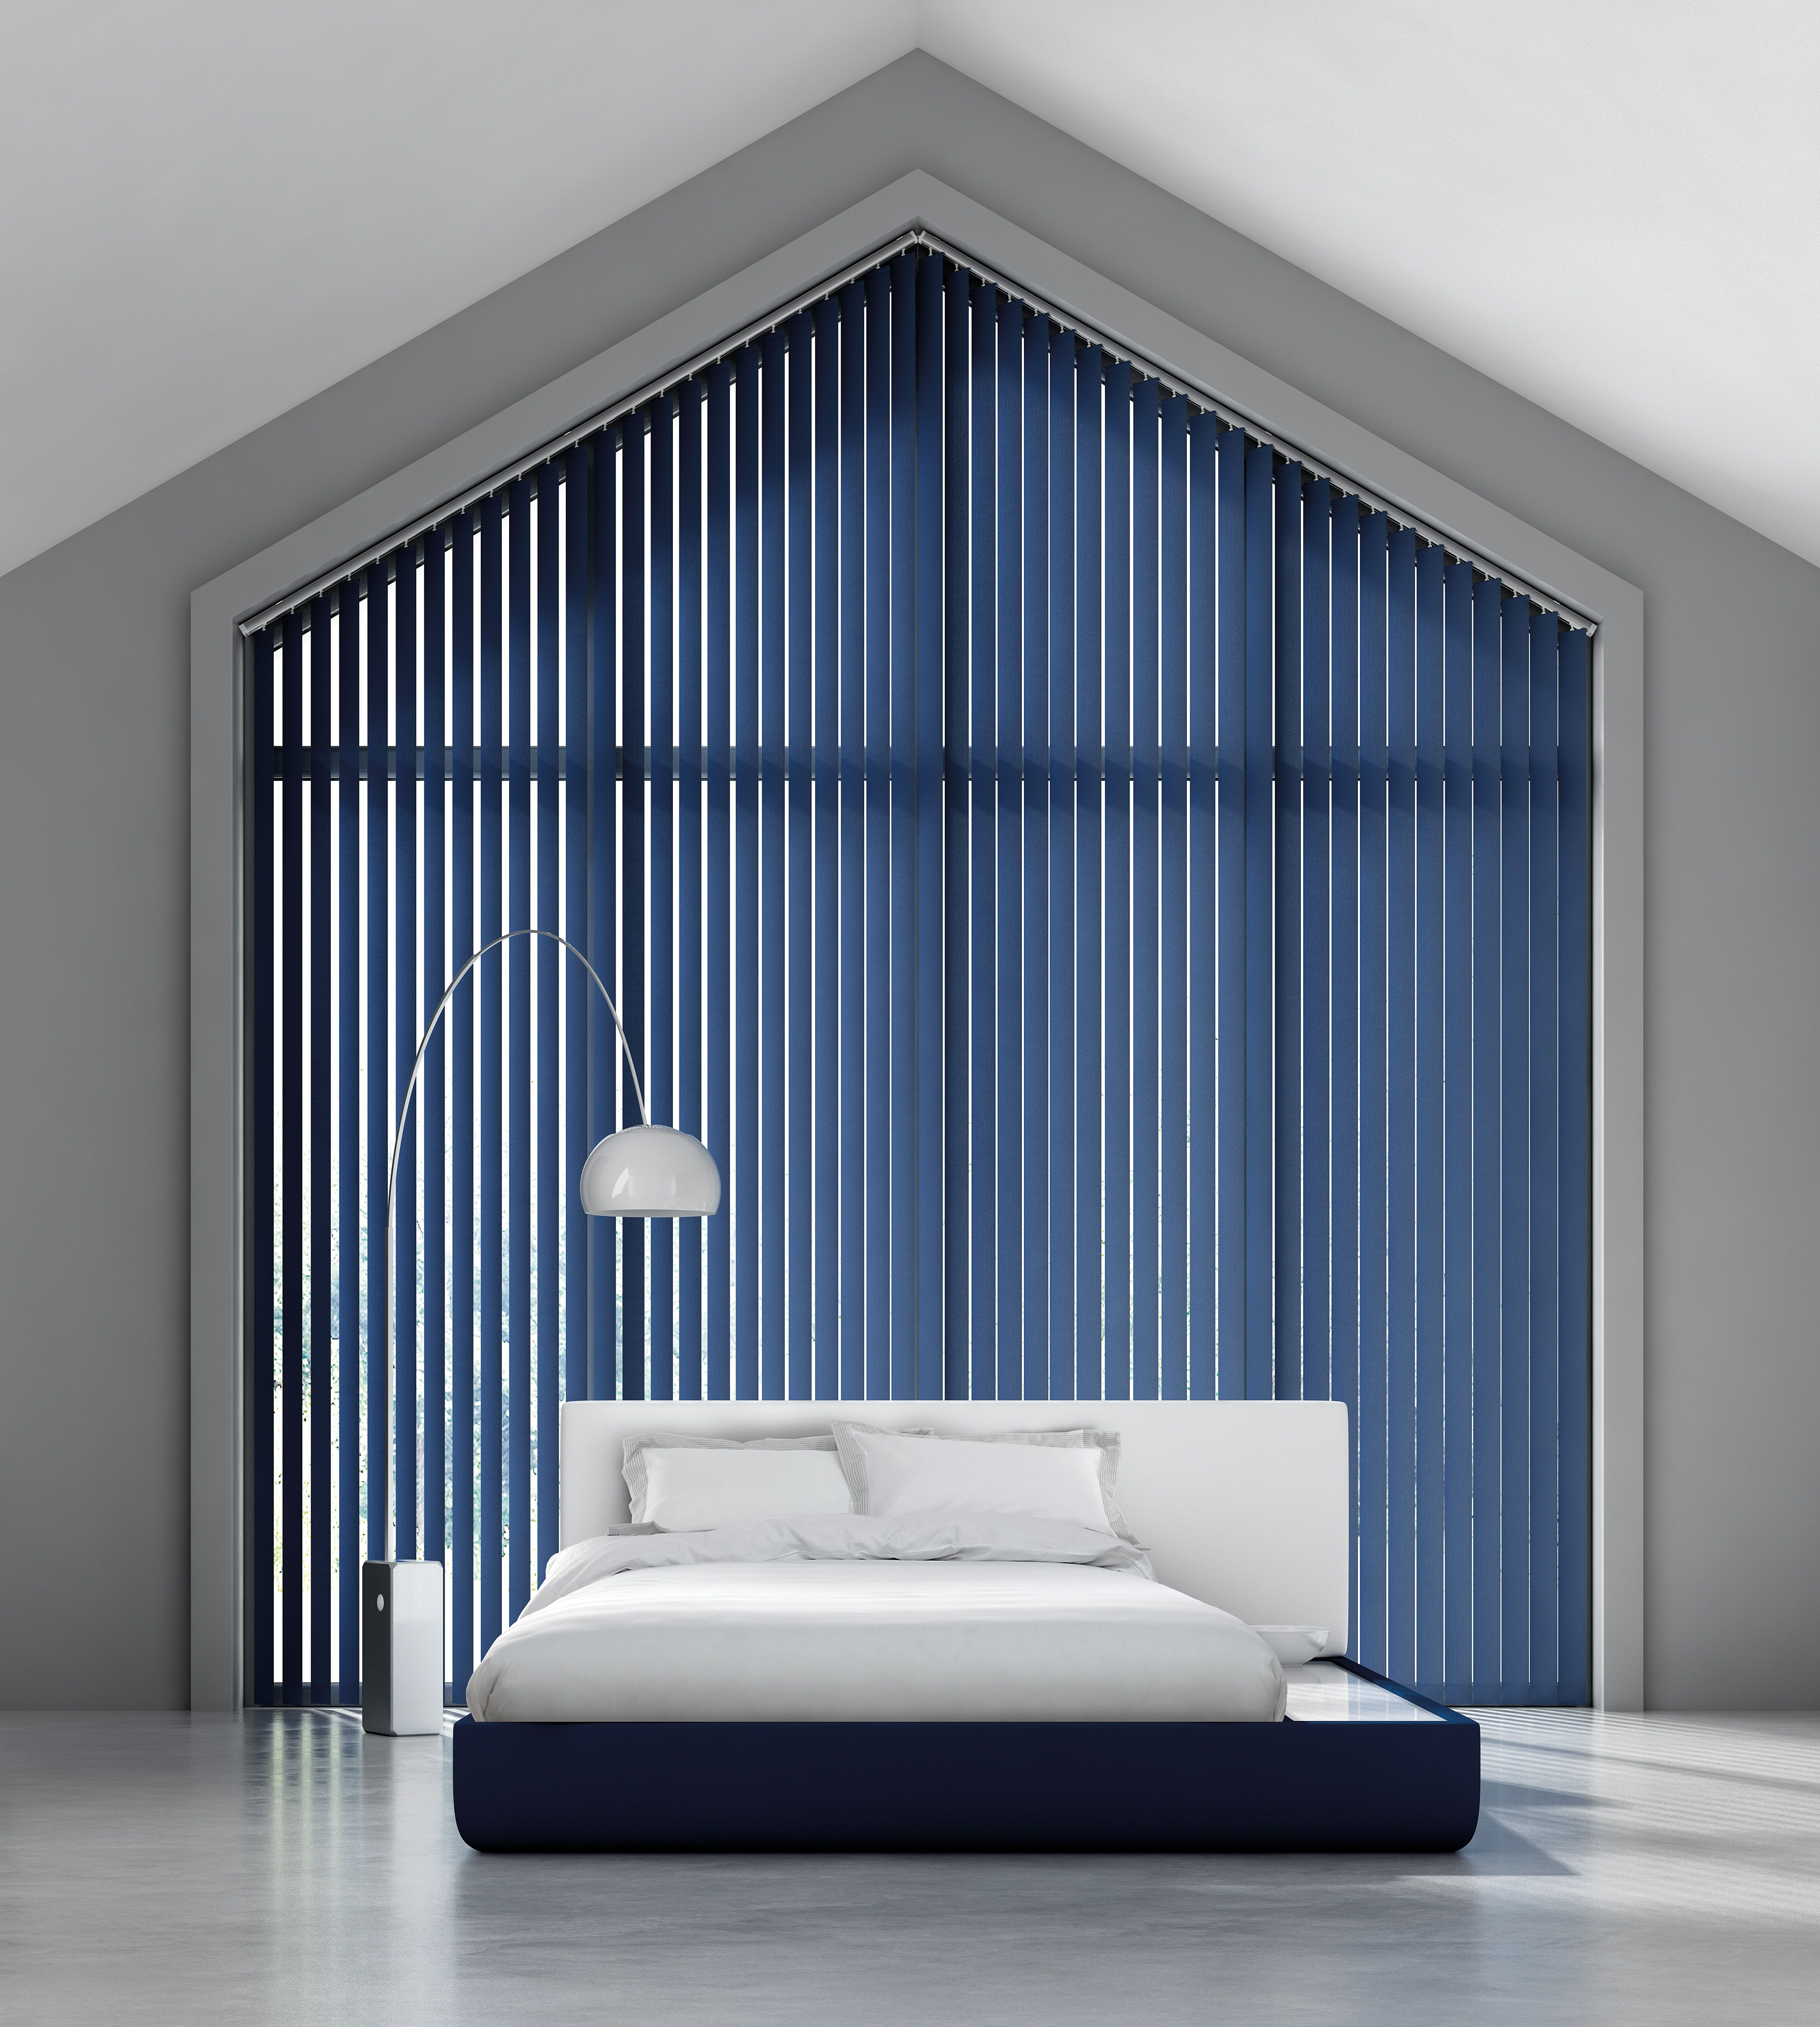 Bella Indigo Vertical Blinds To Really Make A Statement In